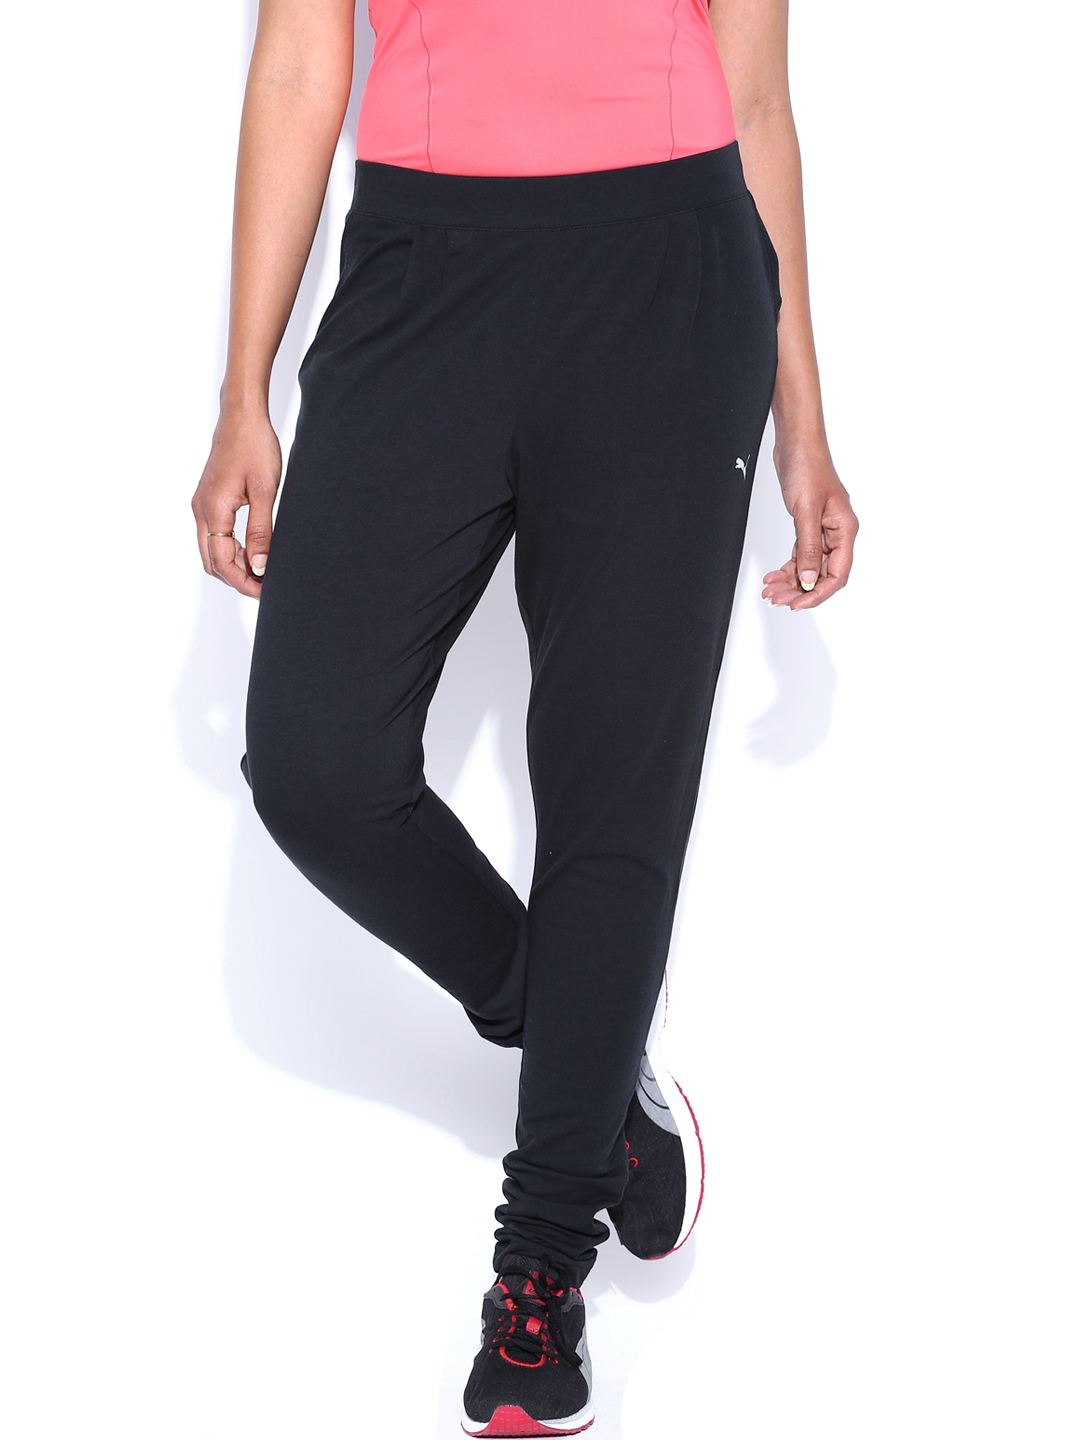 Awesome Chlo Women39s Rainbowstriped Track Pants In Black  Lyst